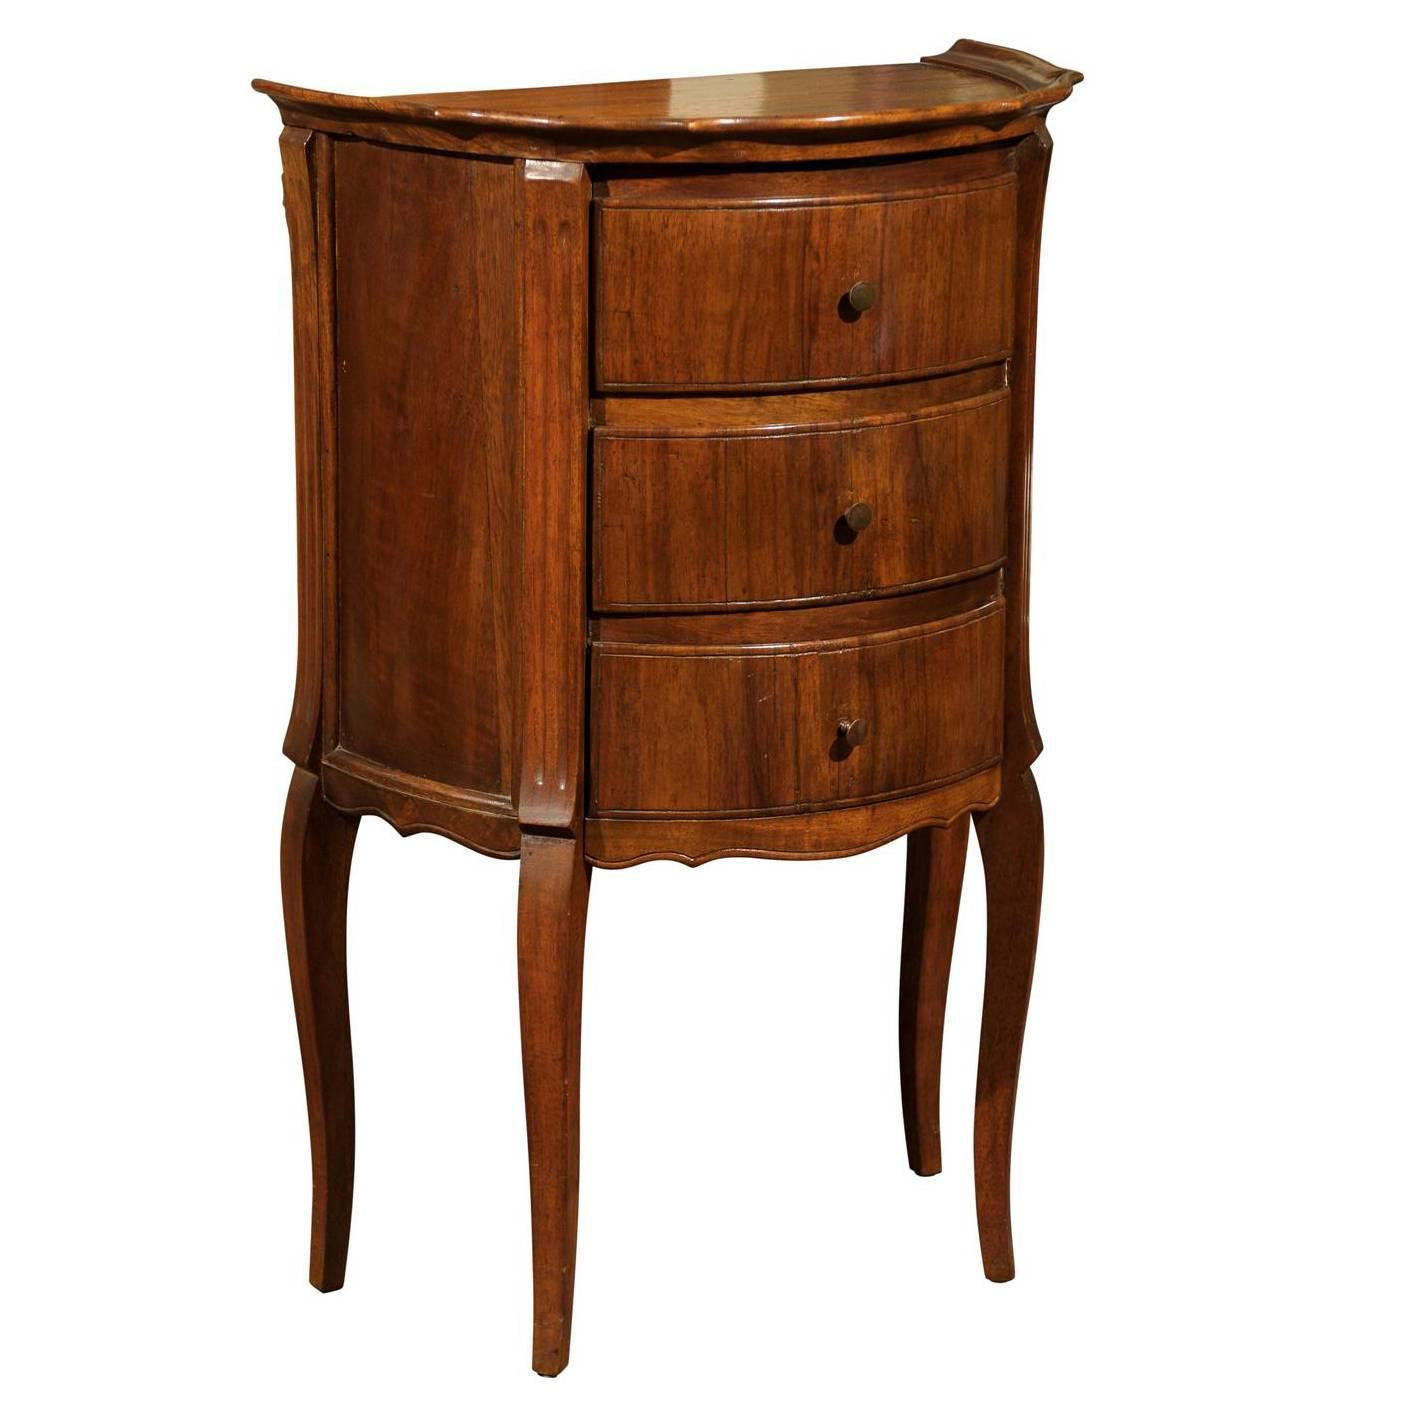 italian petite commode at 1stdibs. Black Bedroom Furniture Sets. Home Design Ideas